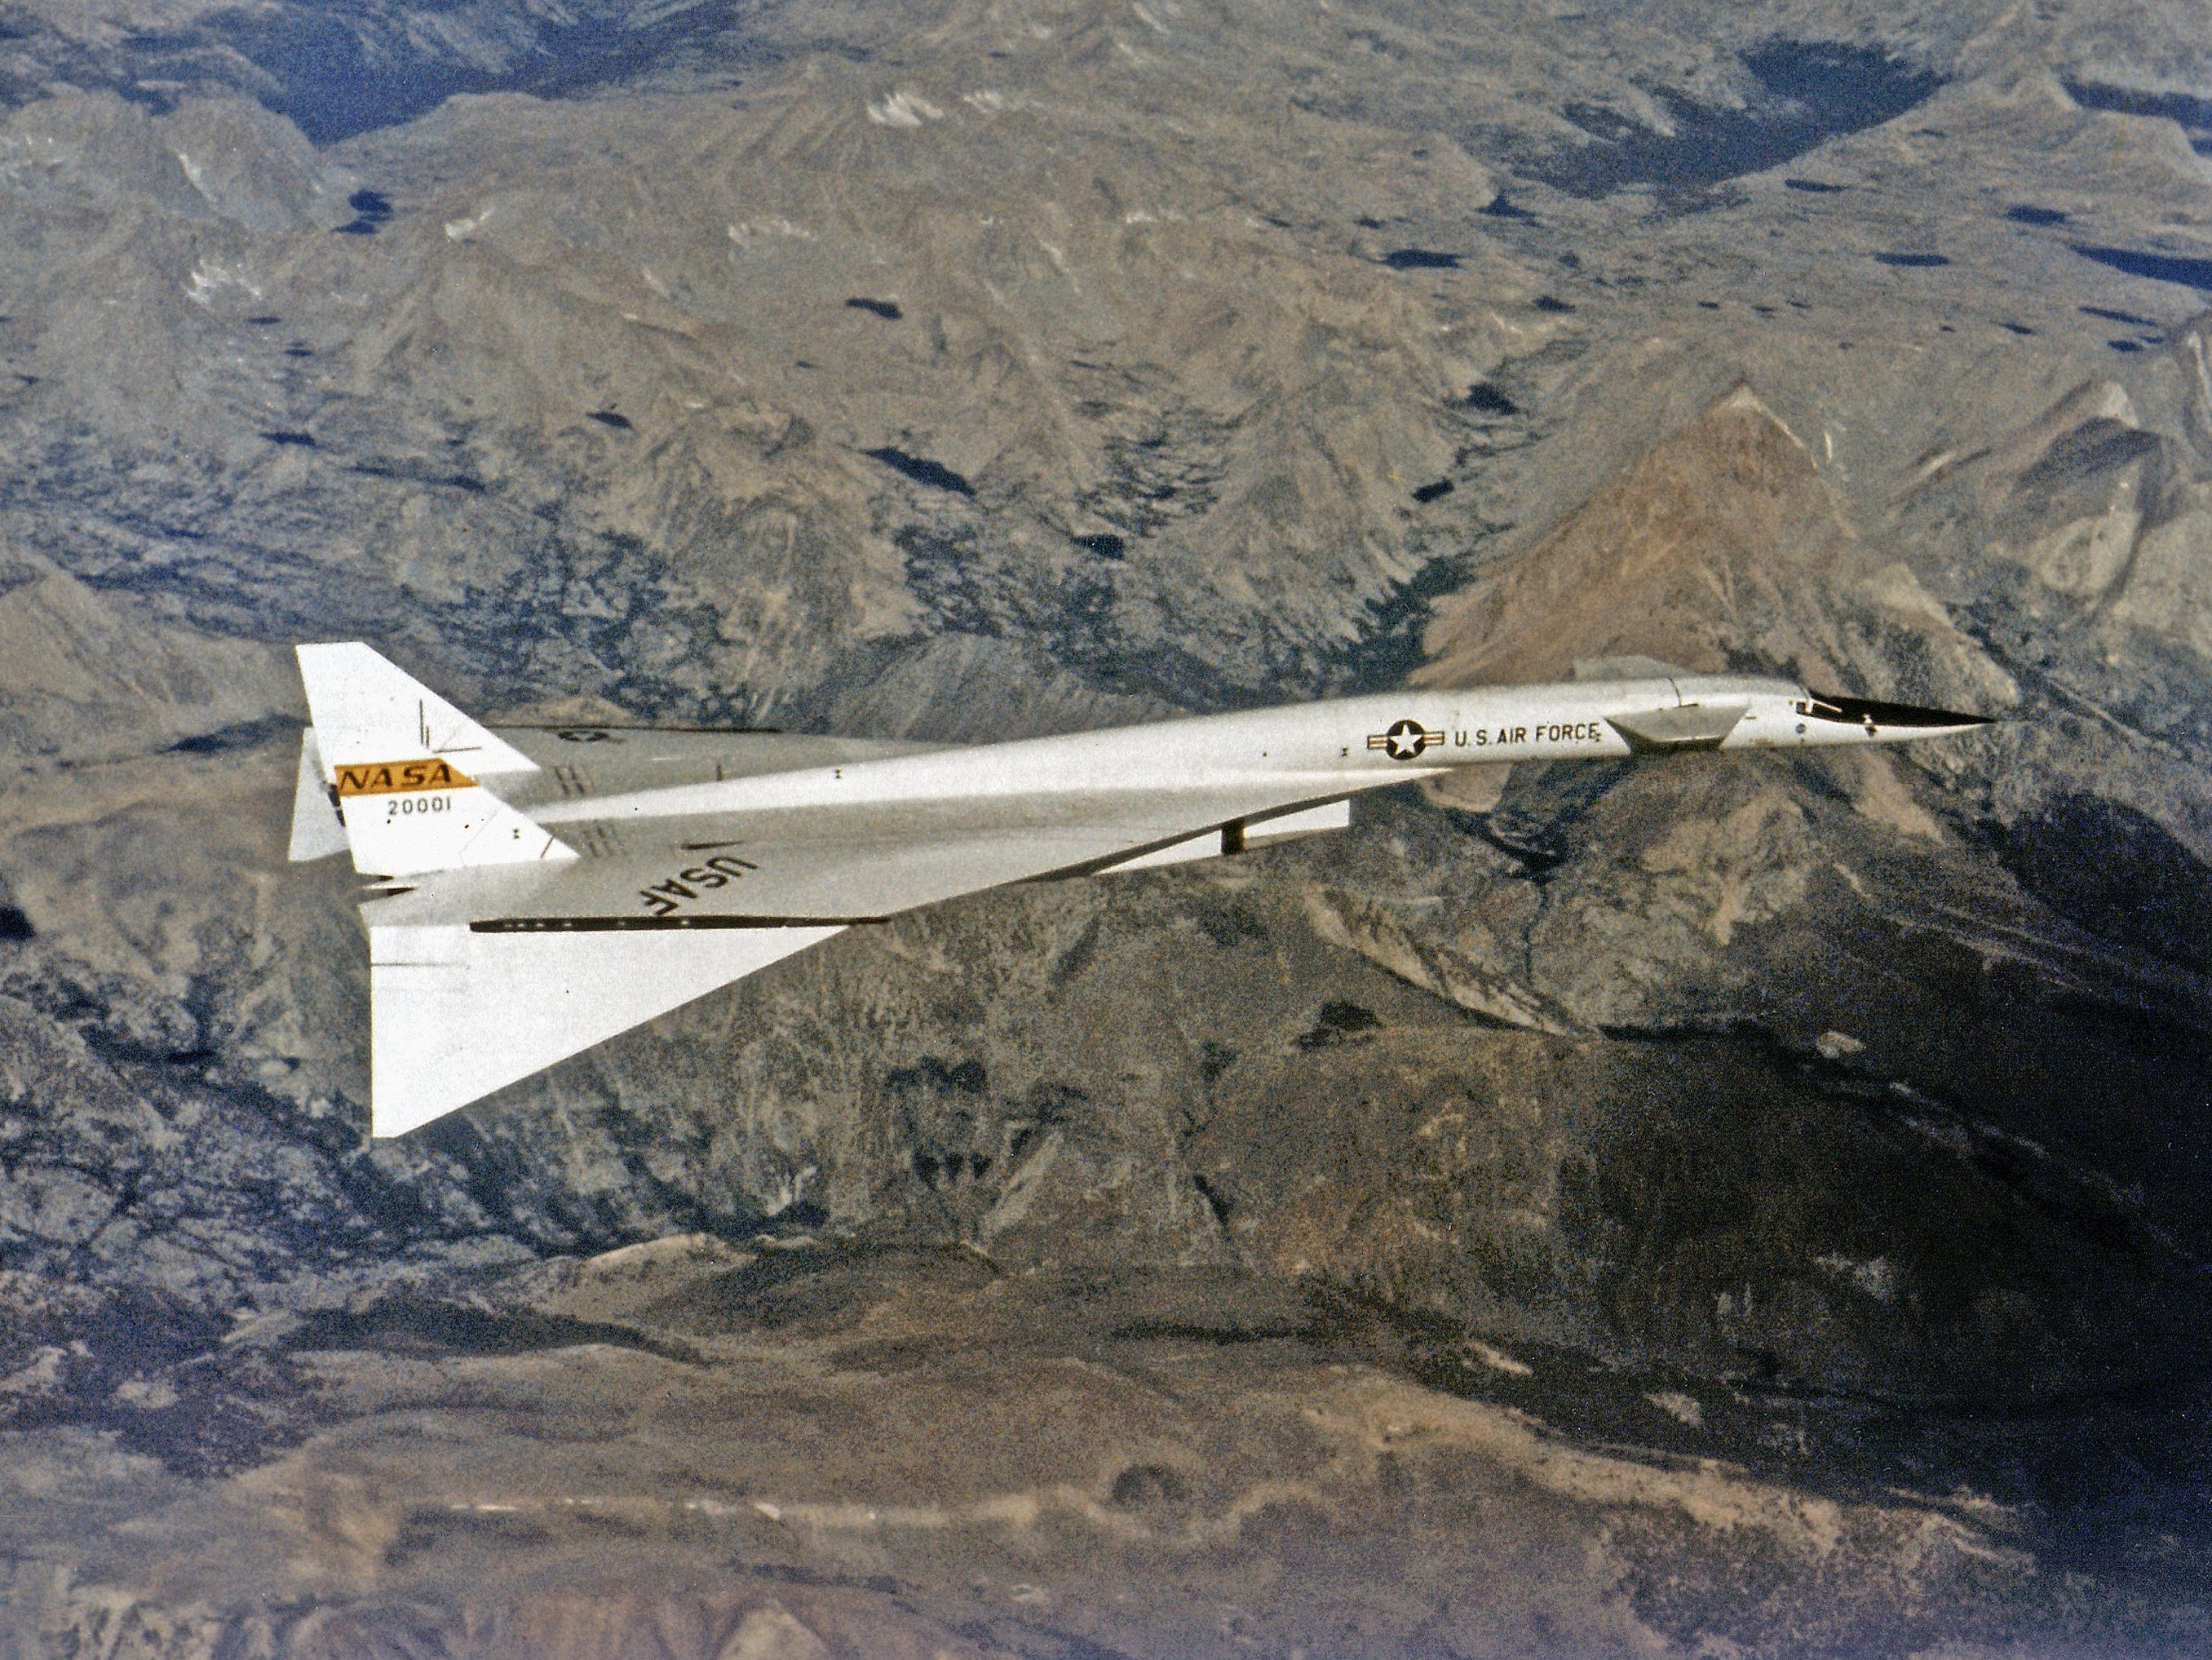 The XB-70 Valkyrie, an experimental aircraft from the 1960s, had articulated wingtips